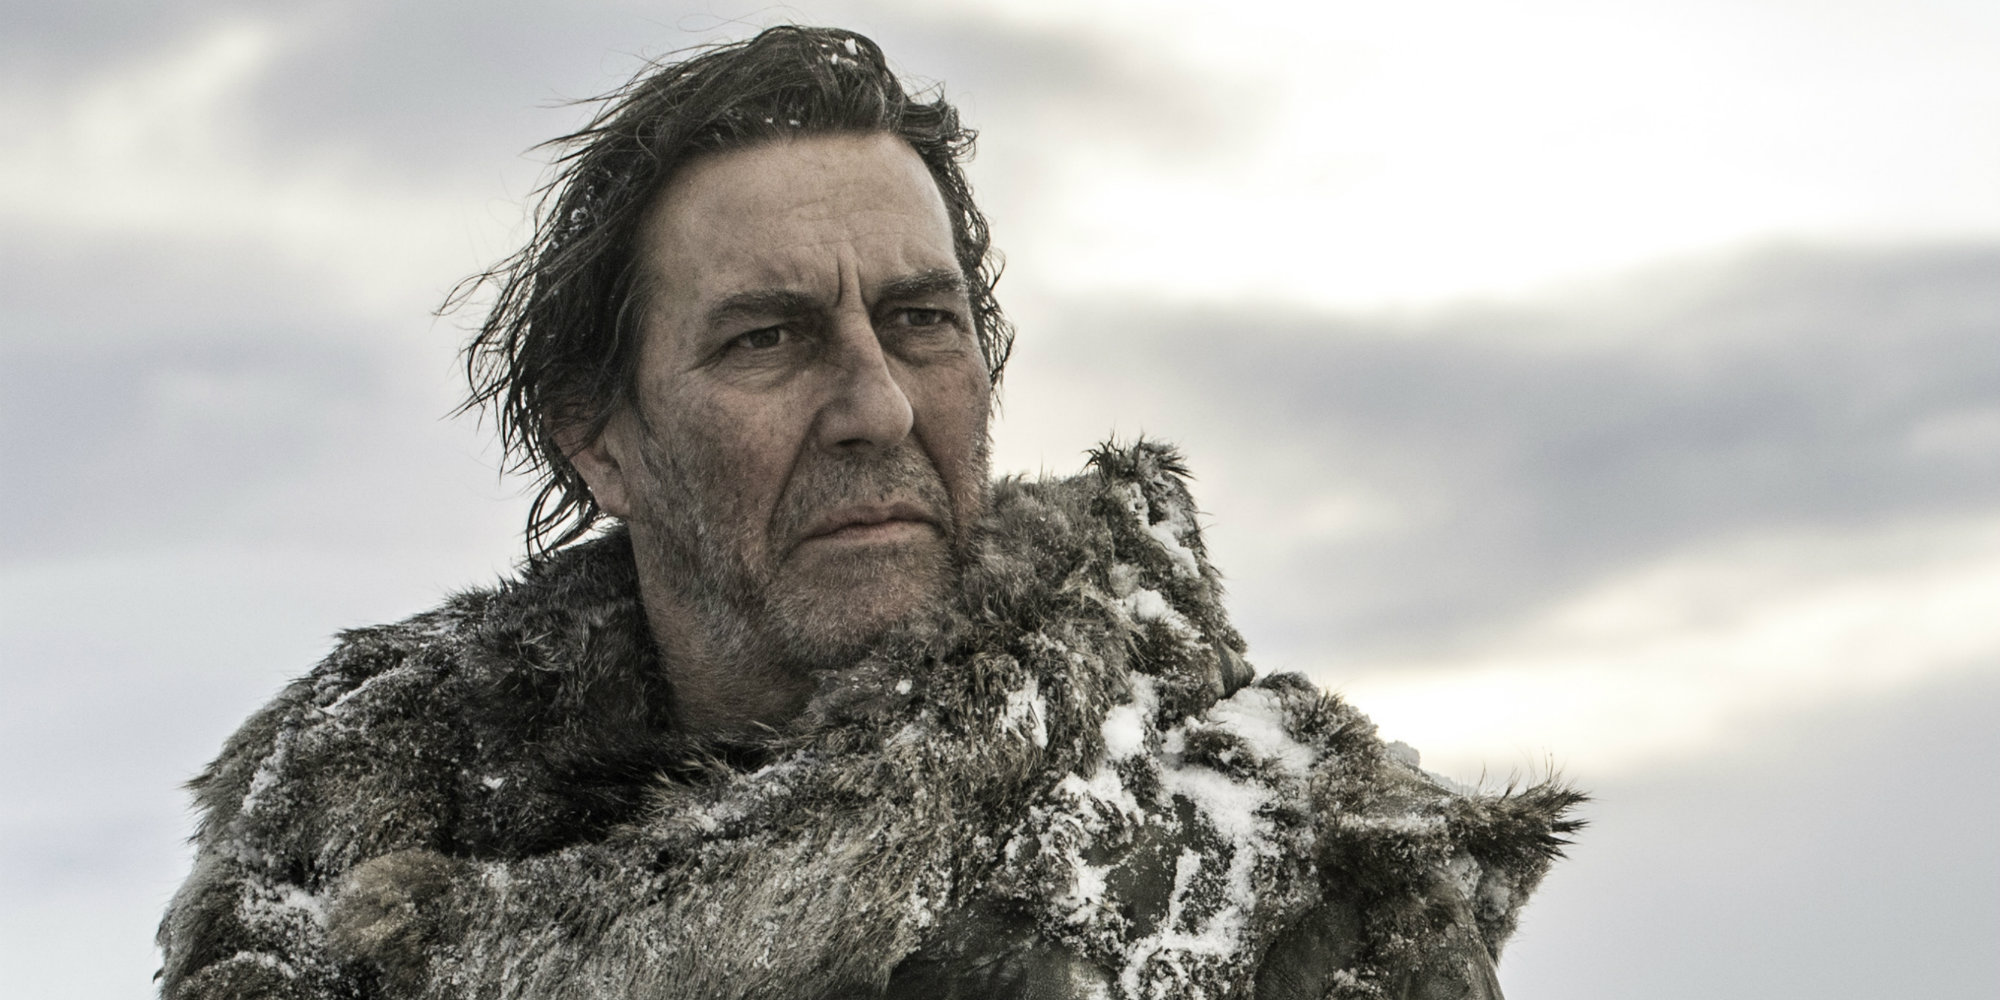 Game of Thrones - Ciarán Hinds as Mance Rayder